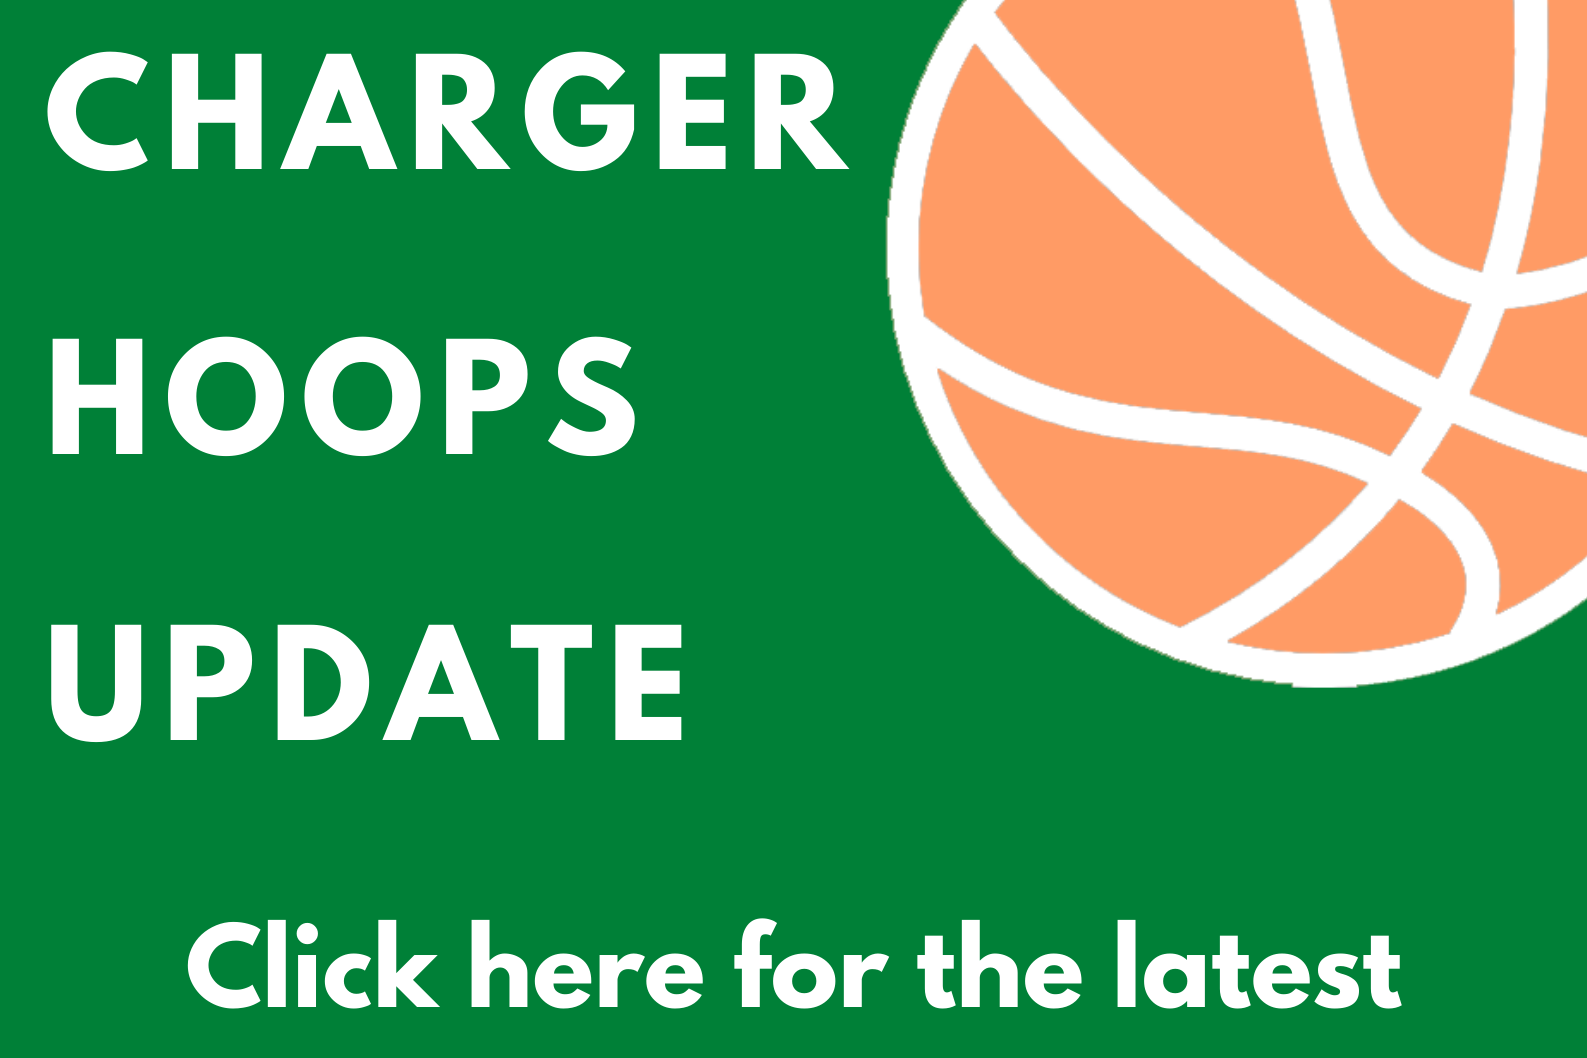 Charger Hoops - 2020 & 2021 Update